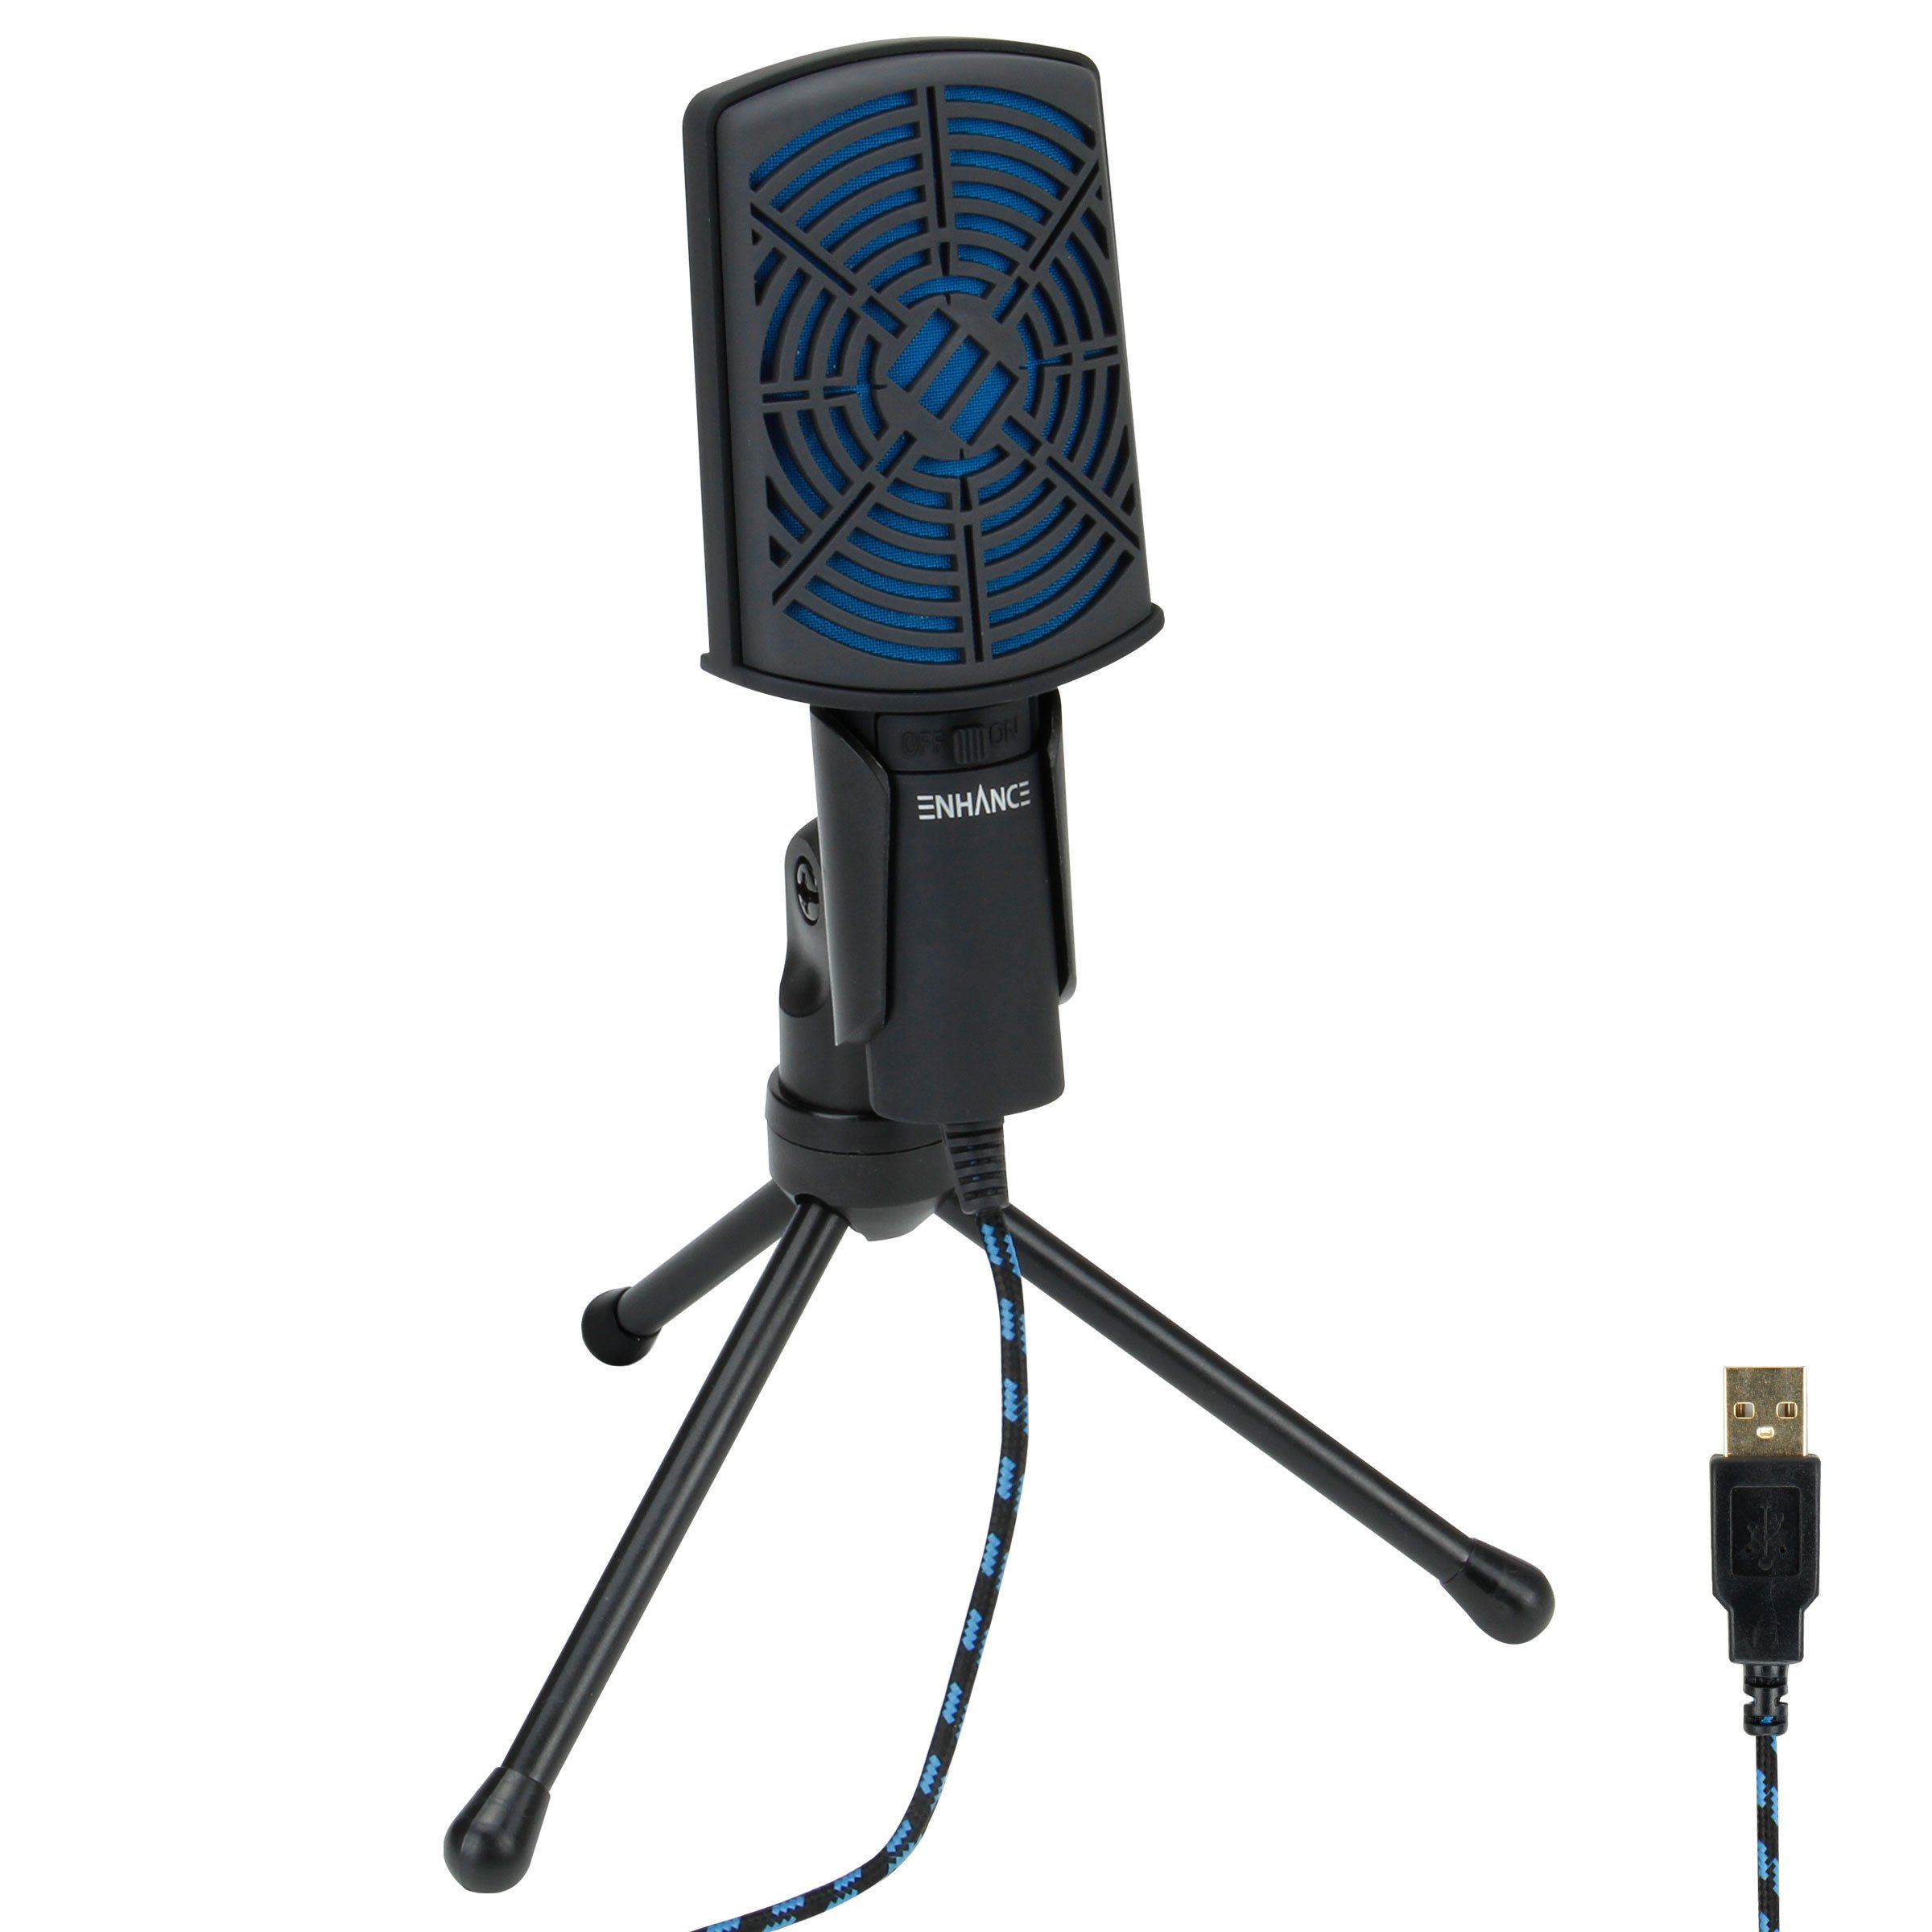 ENHANCE USB Condenser Gaming Microphone - Computer Desktop Mic for Streaming & Recording with Adjustable Stand Design and Mute Switch - For Skype, Conference Calls, Twitch, Youtube, and Discord - Blue